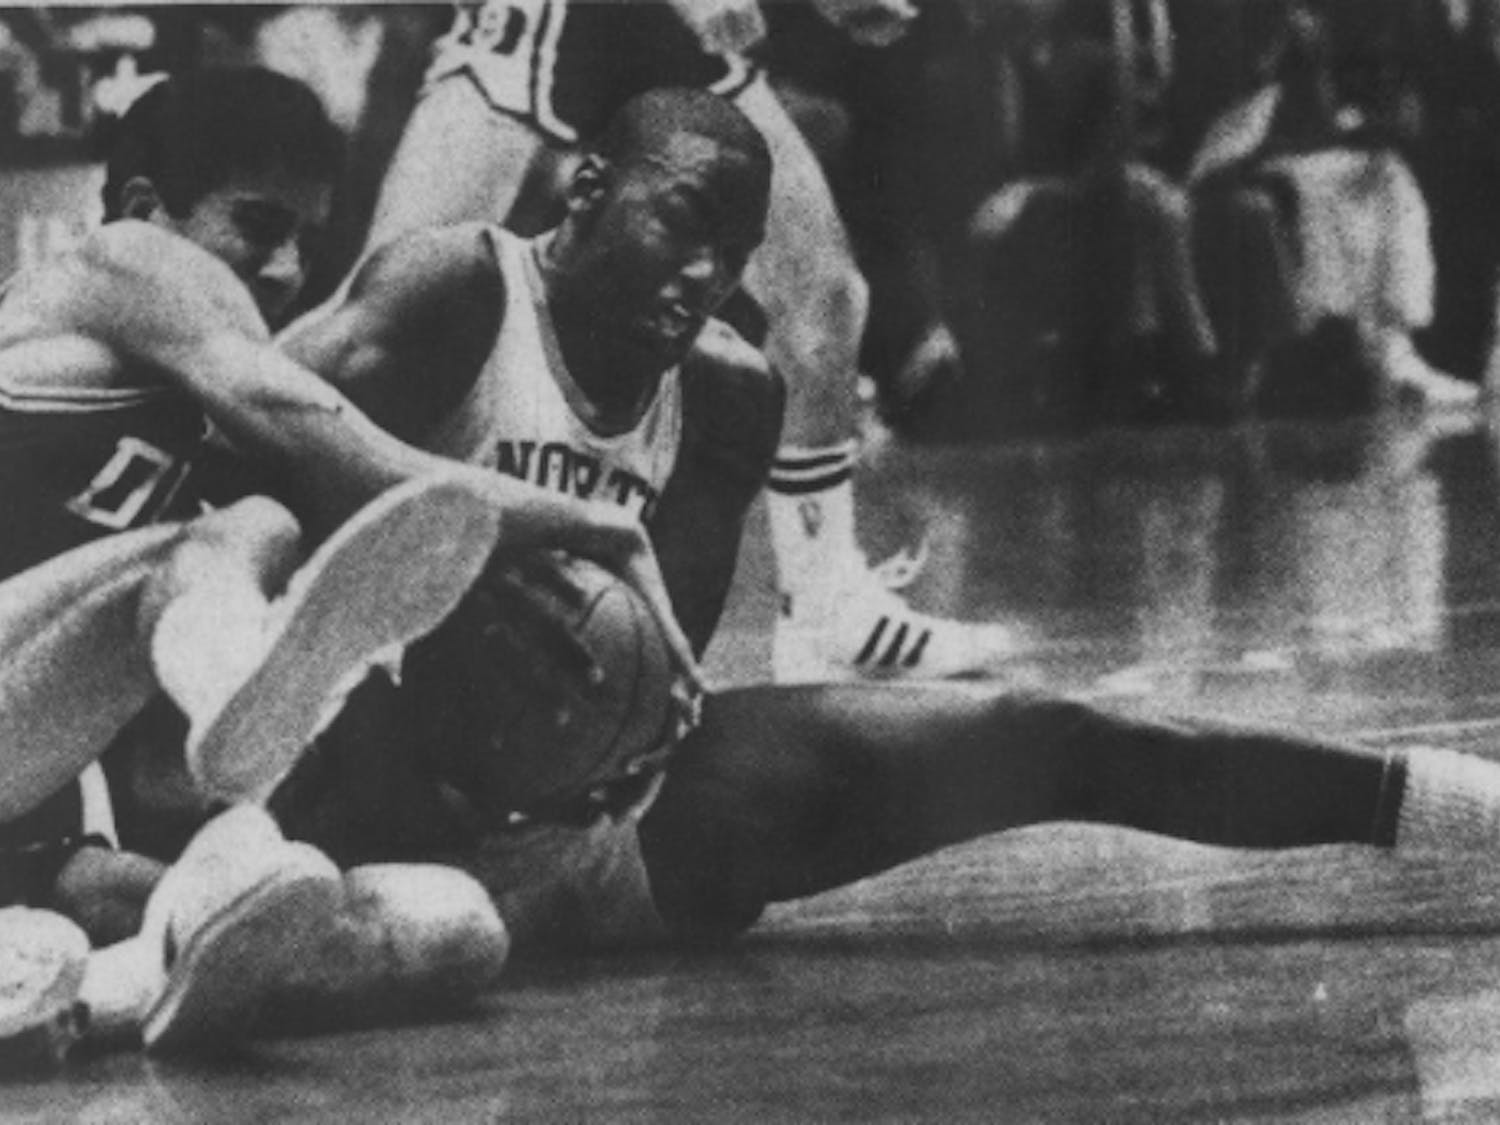 DTH Archive. UNC sophomore Michael Jordan fights with Chip Engelland for possession of the ball in Jan. 22, 1983's 103-82 thrashing of Duke. Photo by Al Steele.